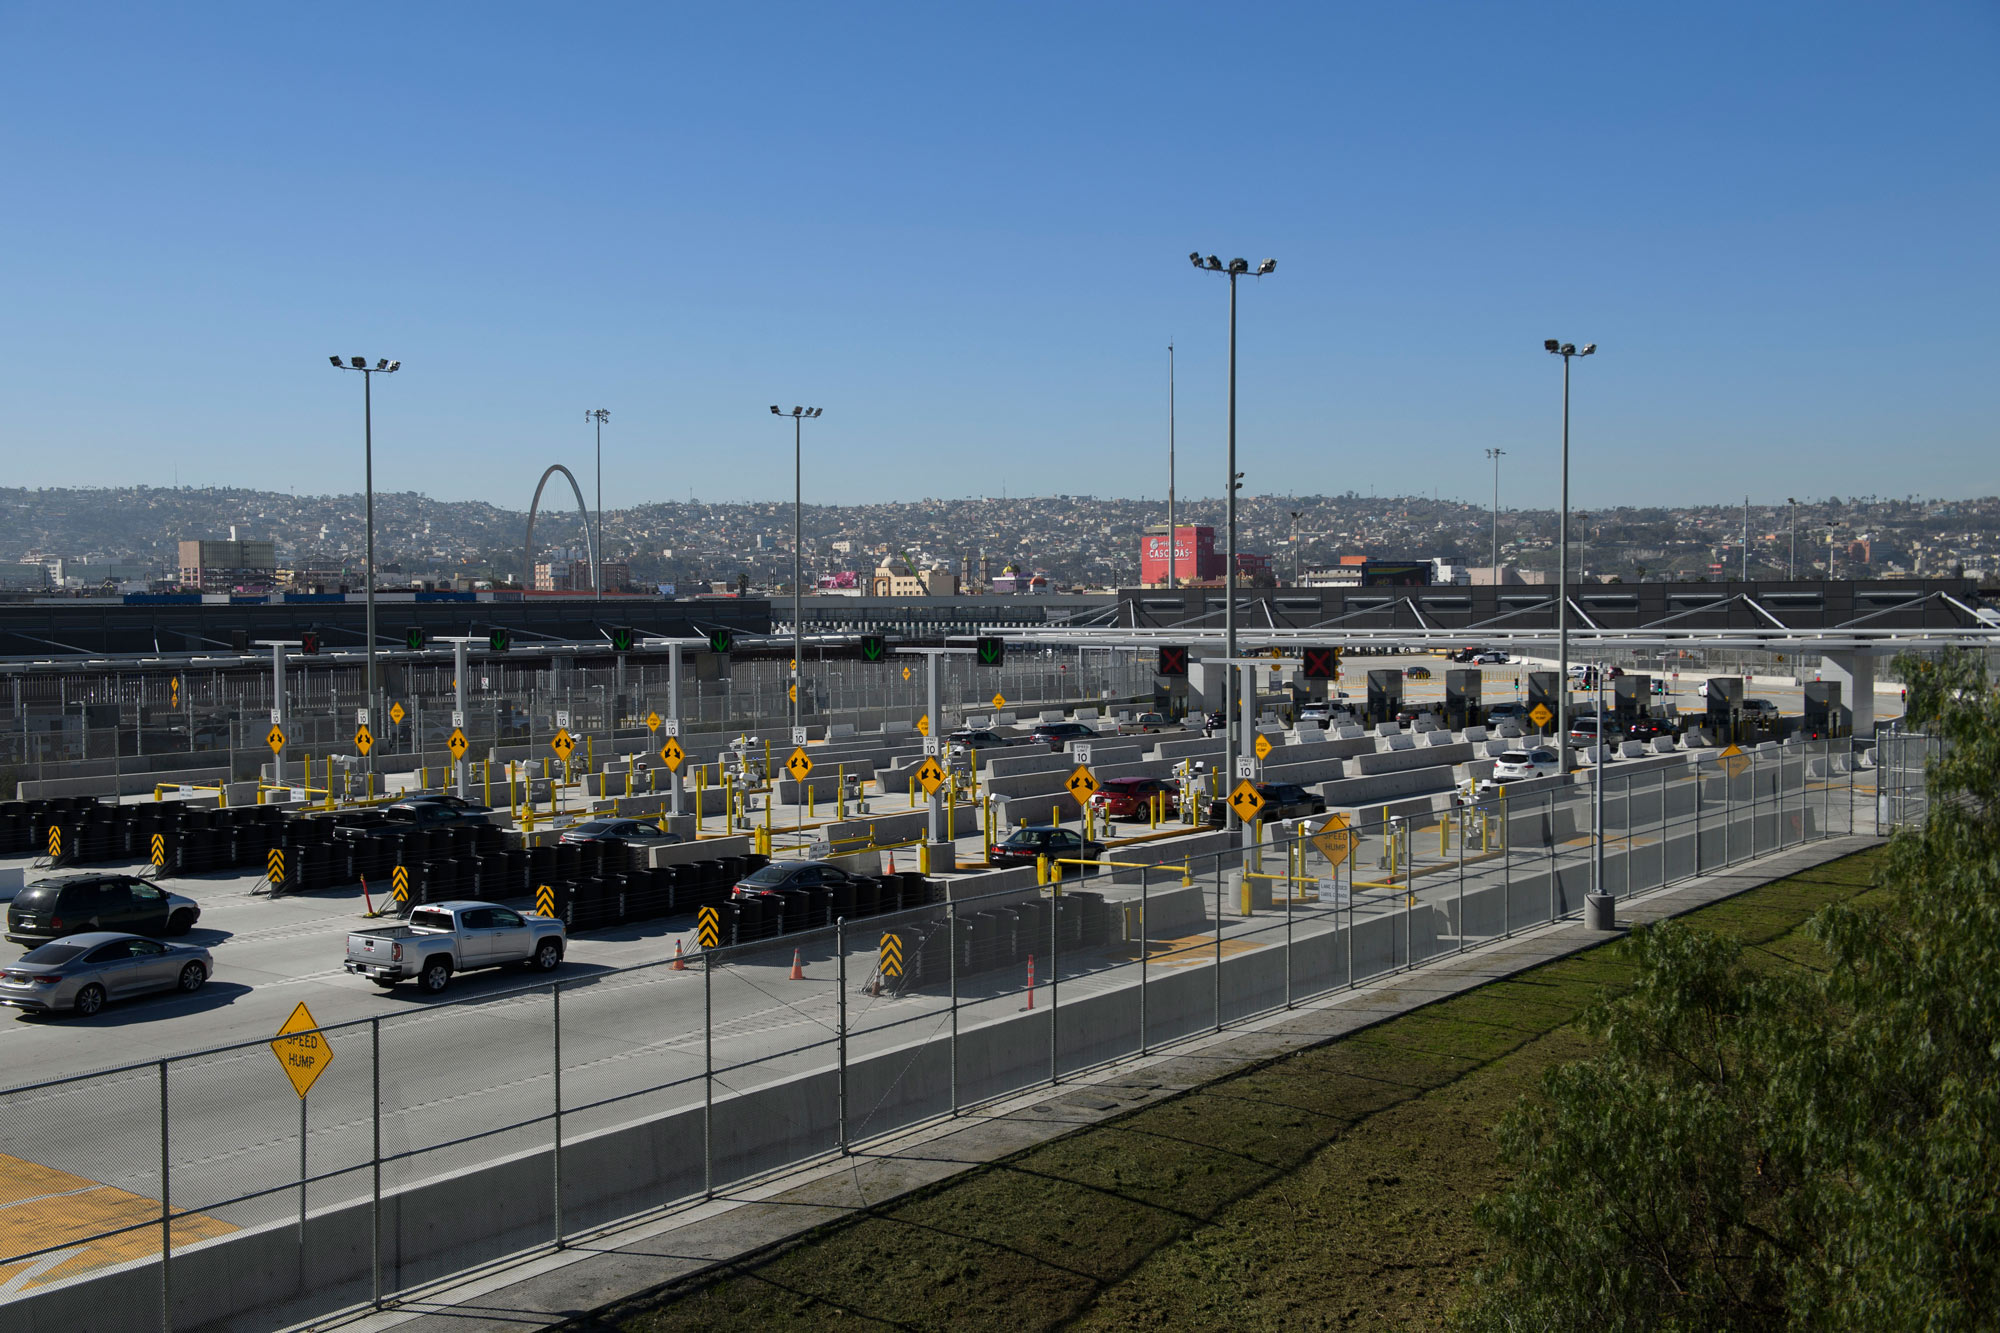 Vehicles enter a border checkpoint at the US Customs and Border Protection San Ysidro Port of Entry at the US Mexico border on February 19 in San Diego, California.